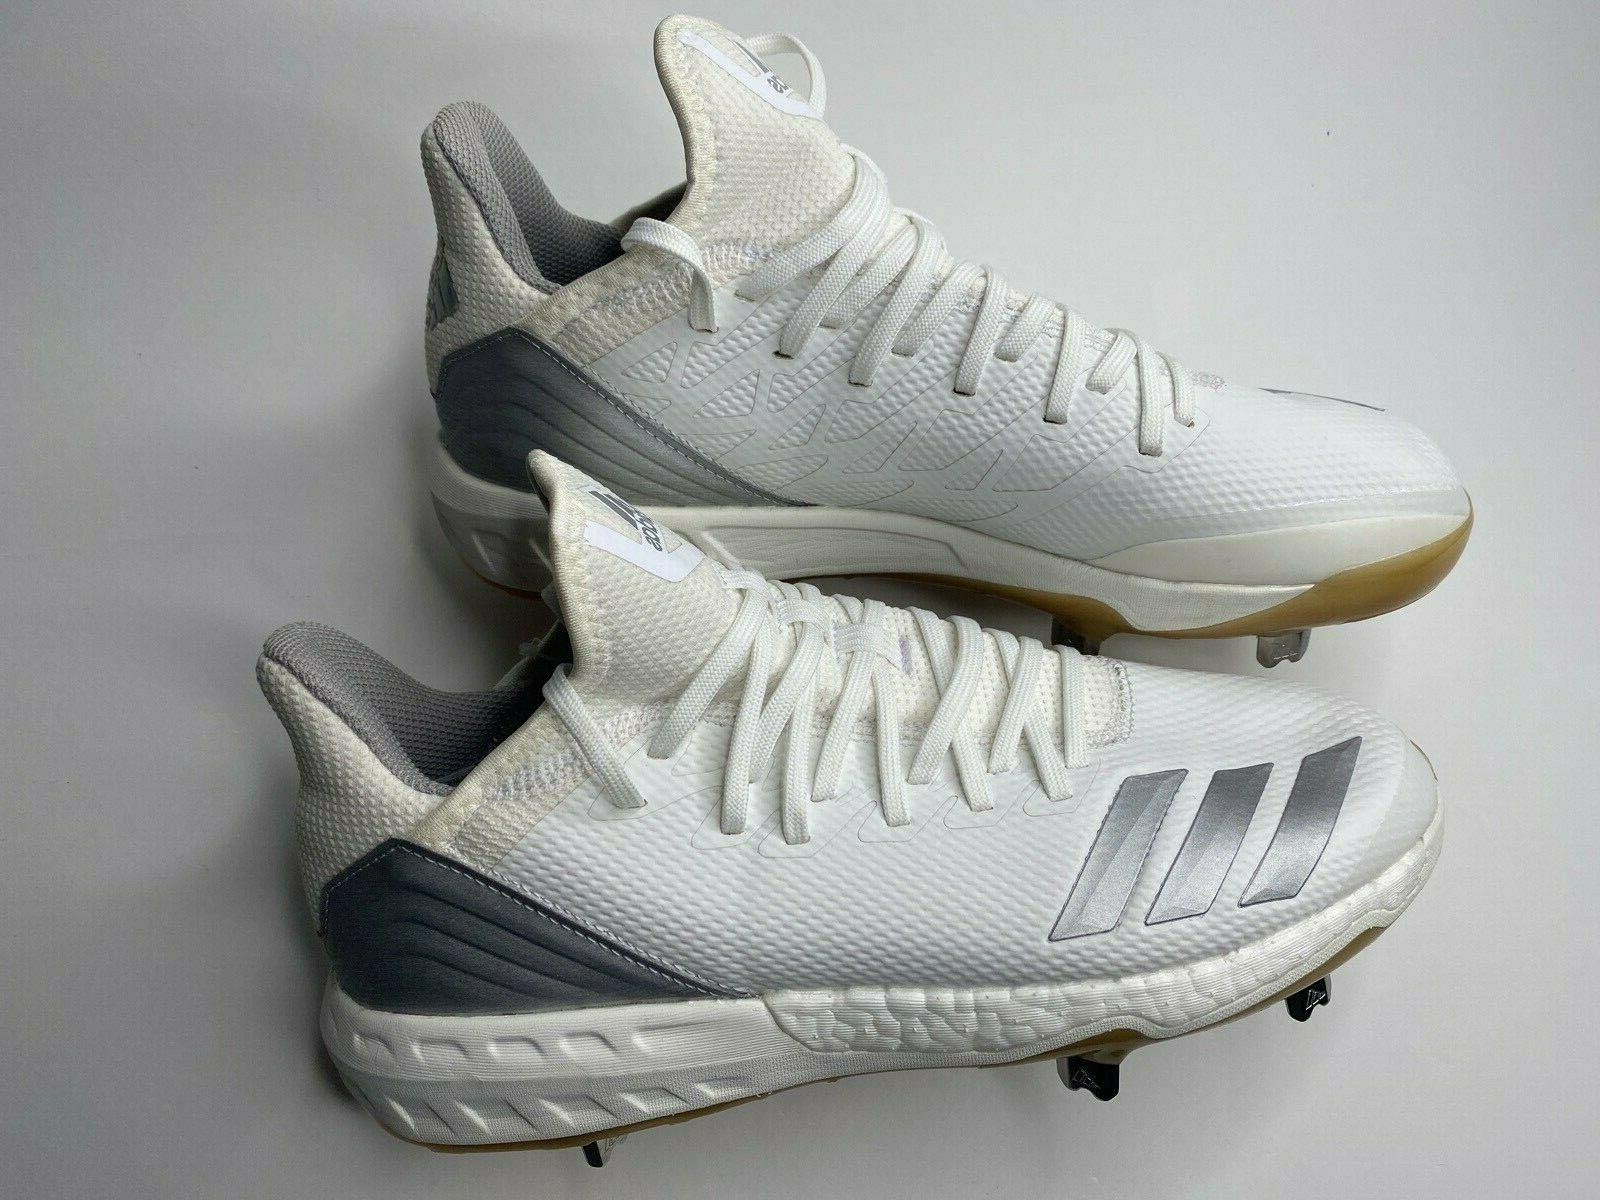 boost icon 4 cleats men s baseball